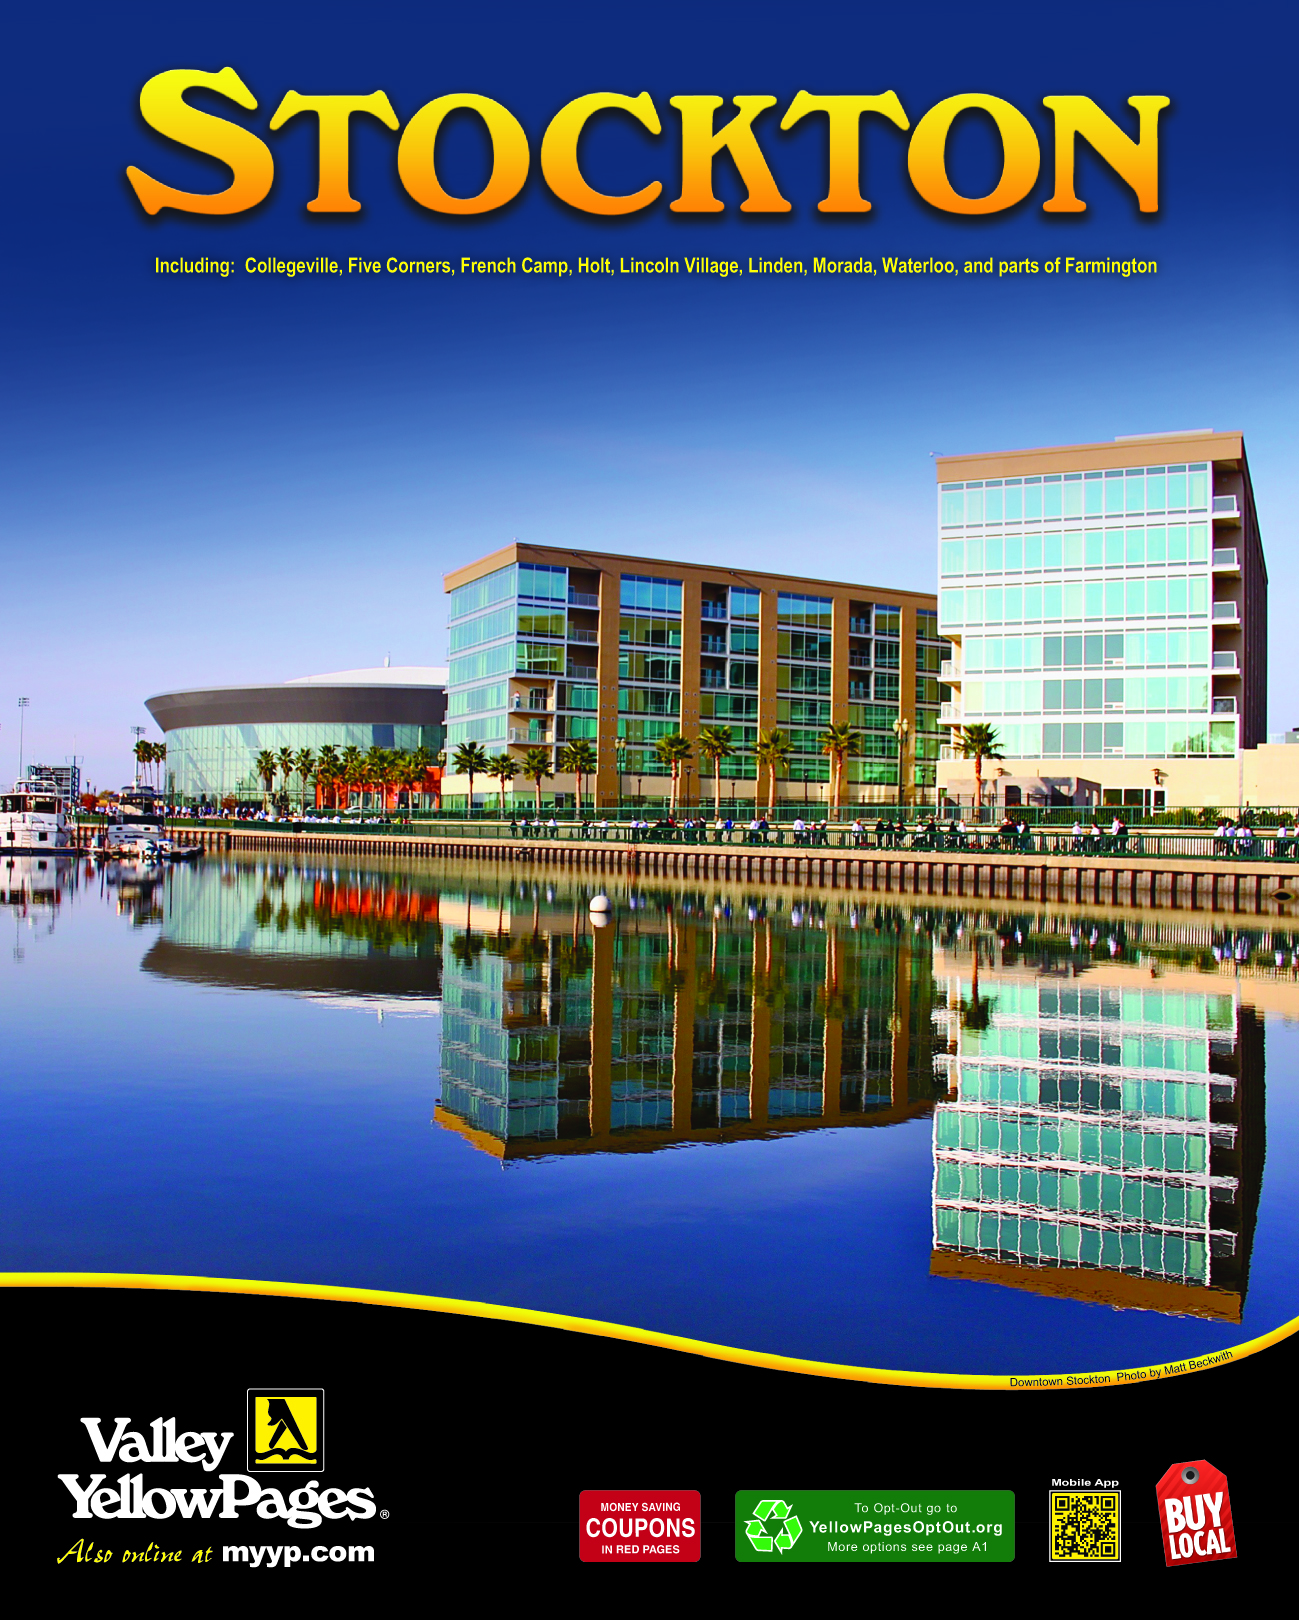 stockton-phonebook-2013-mattbeckwith